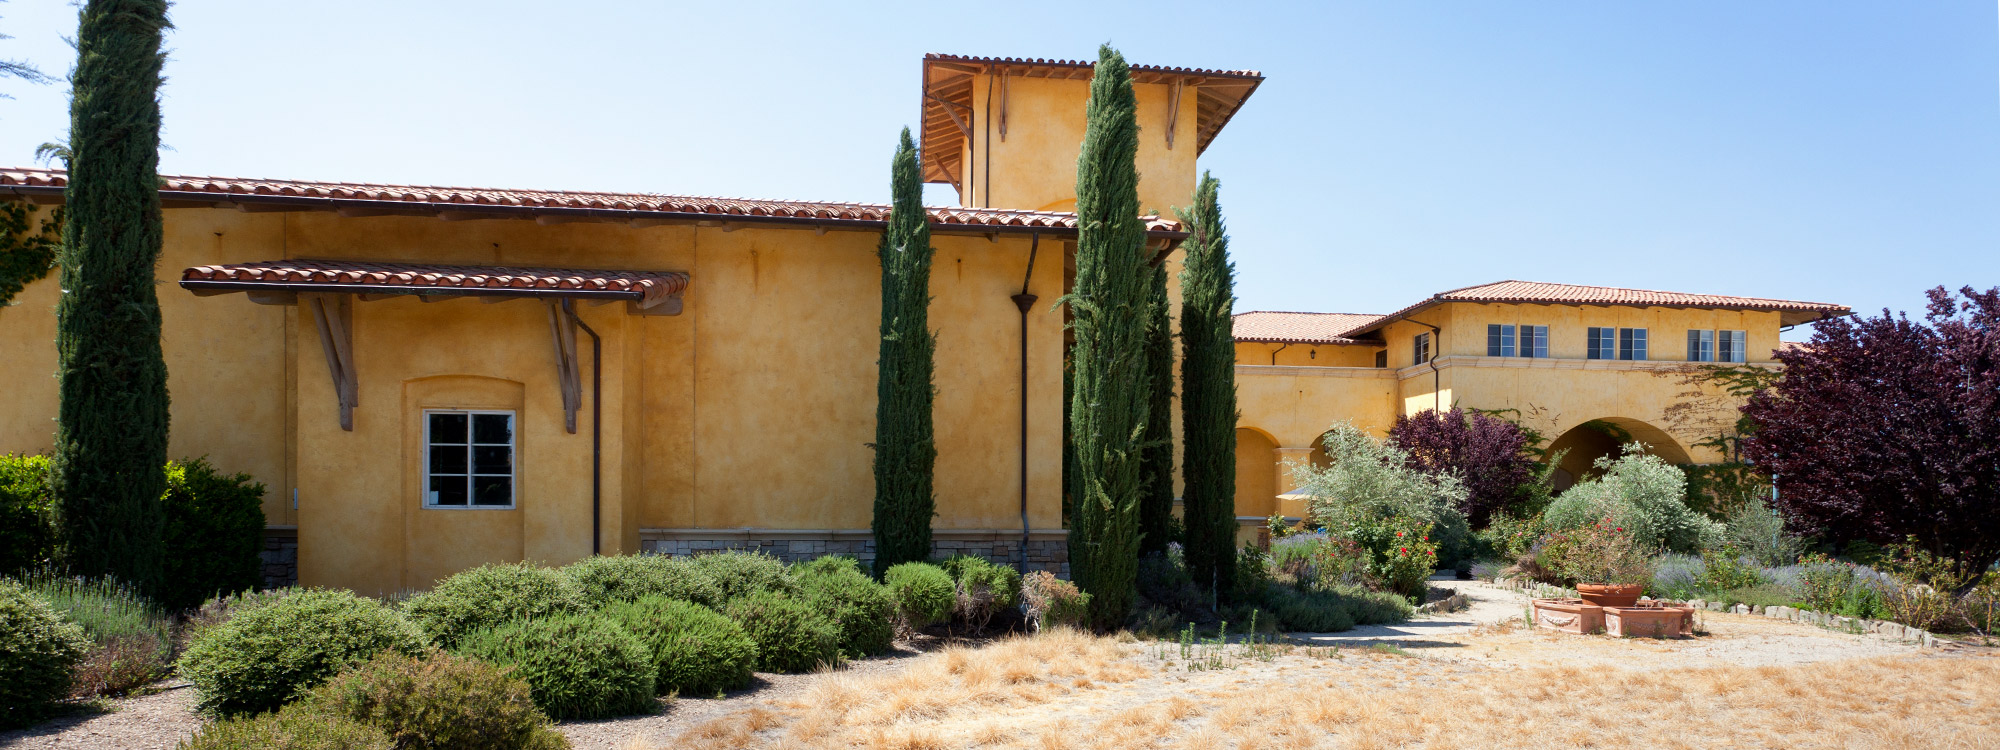 Winery Restoration - Tasting Room Contractor - JW Design & Construction